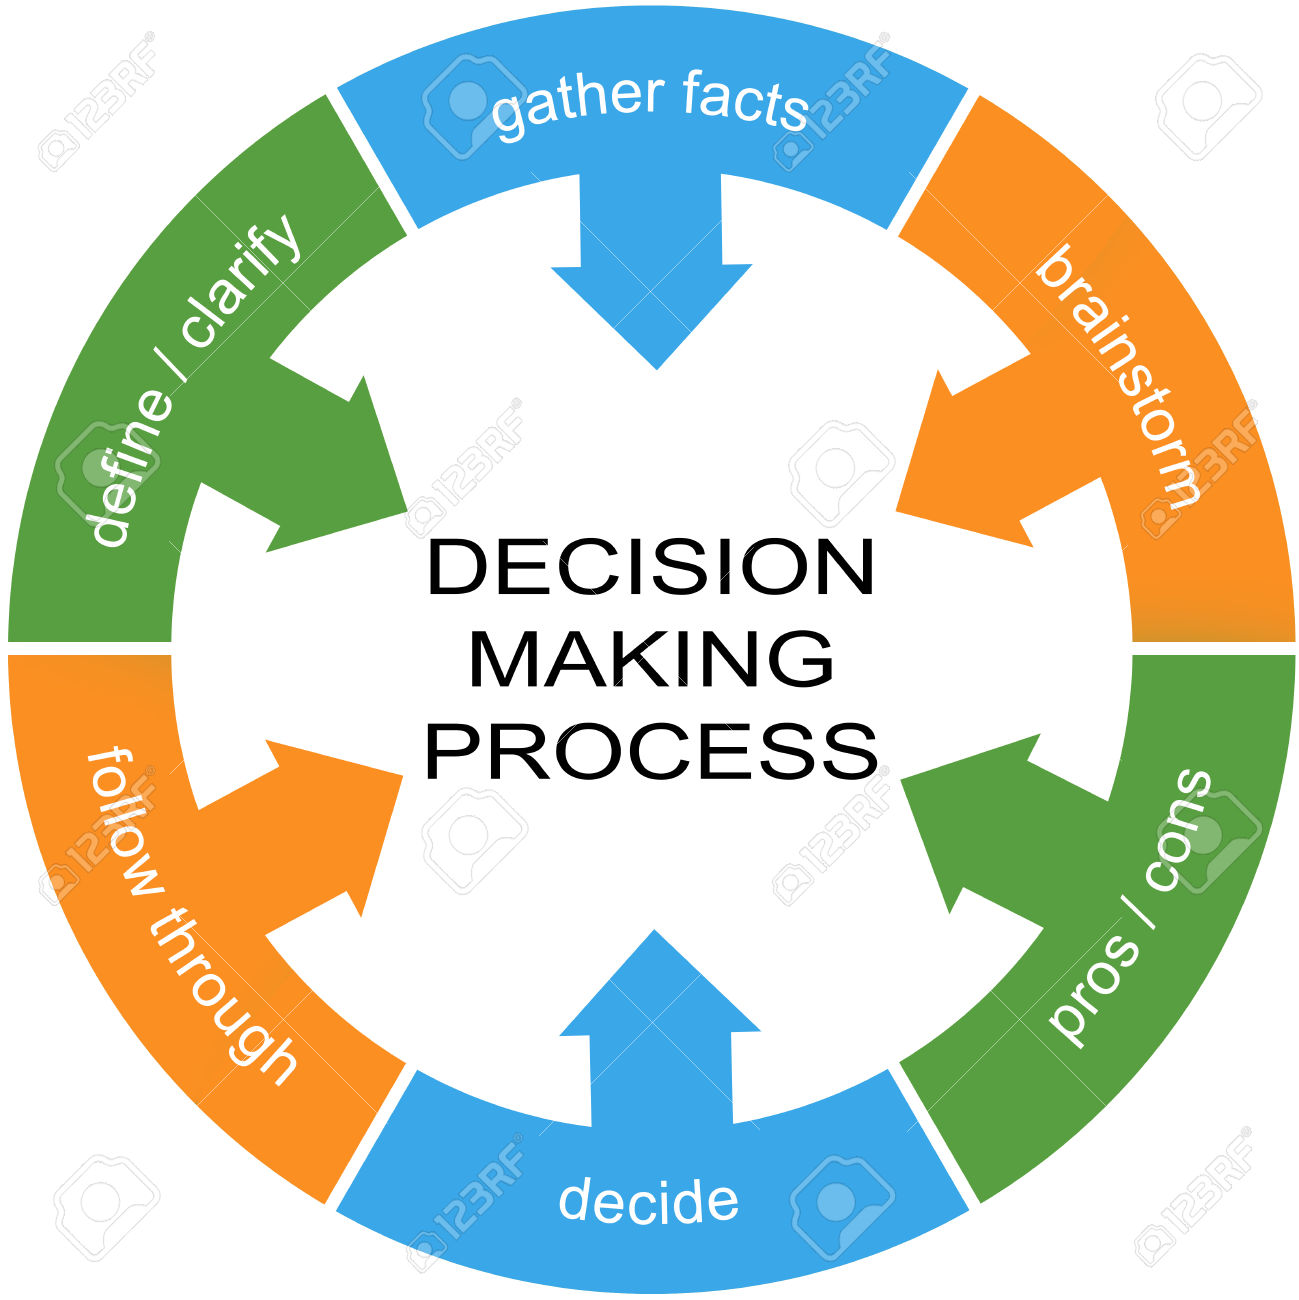 Essential elements of the group decision making process